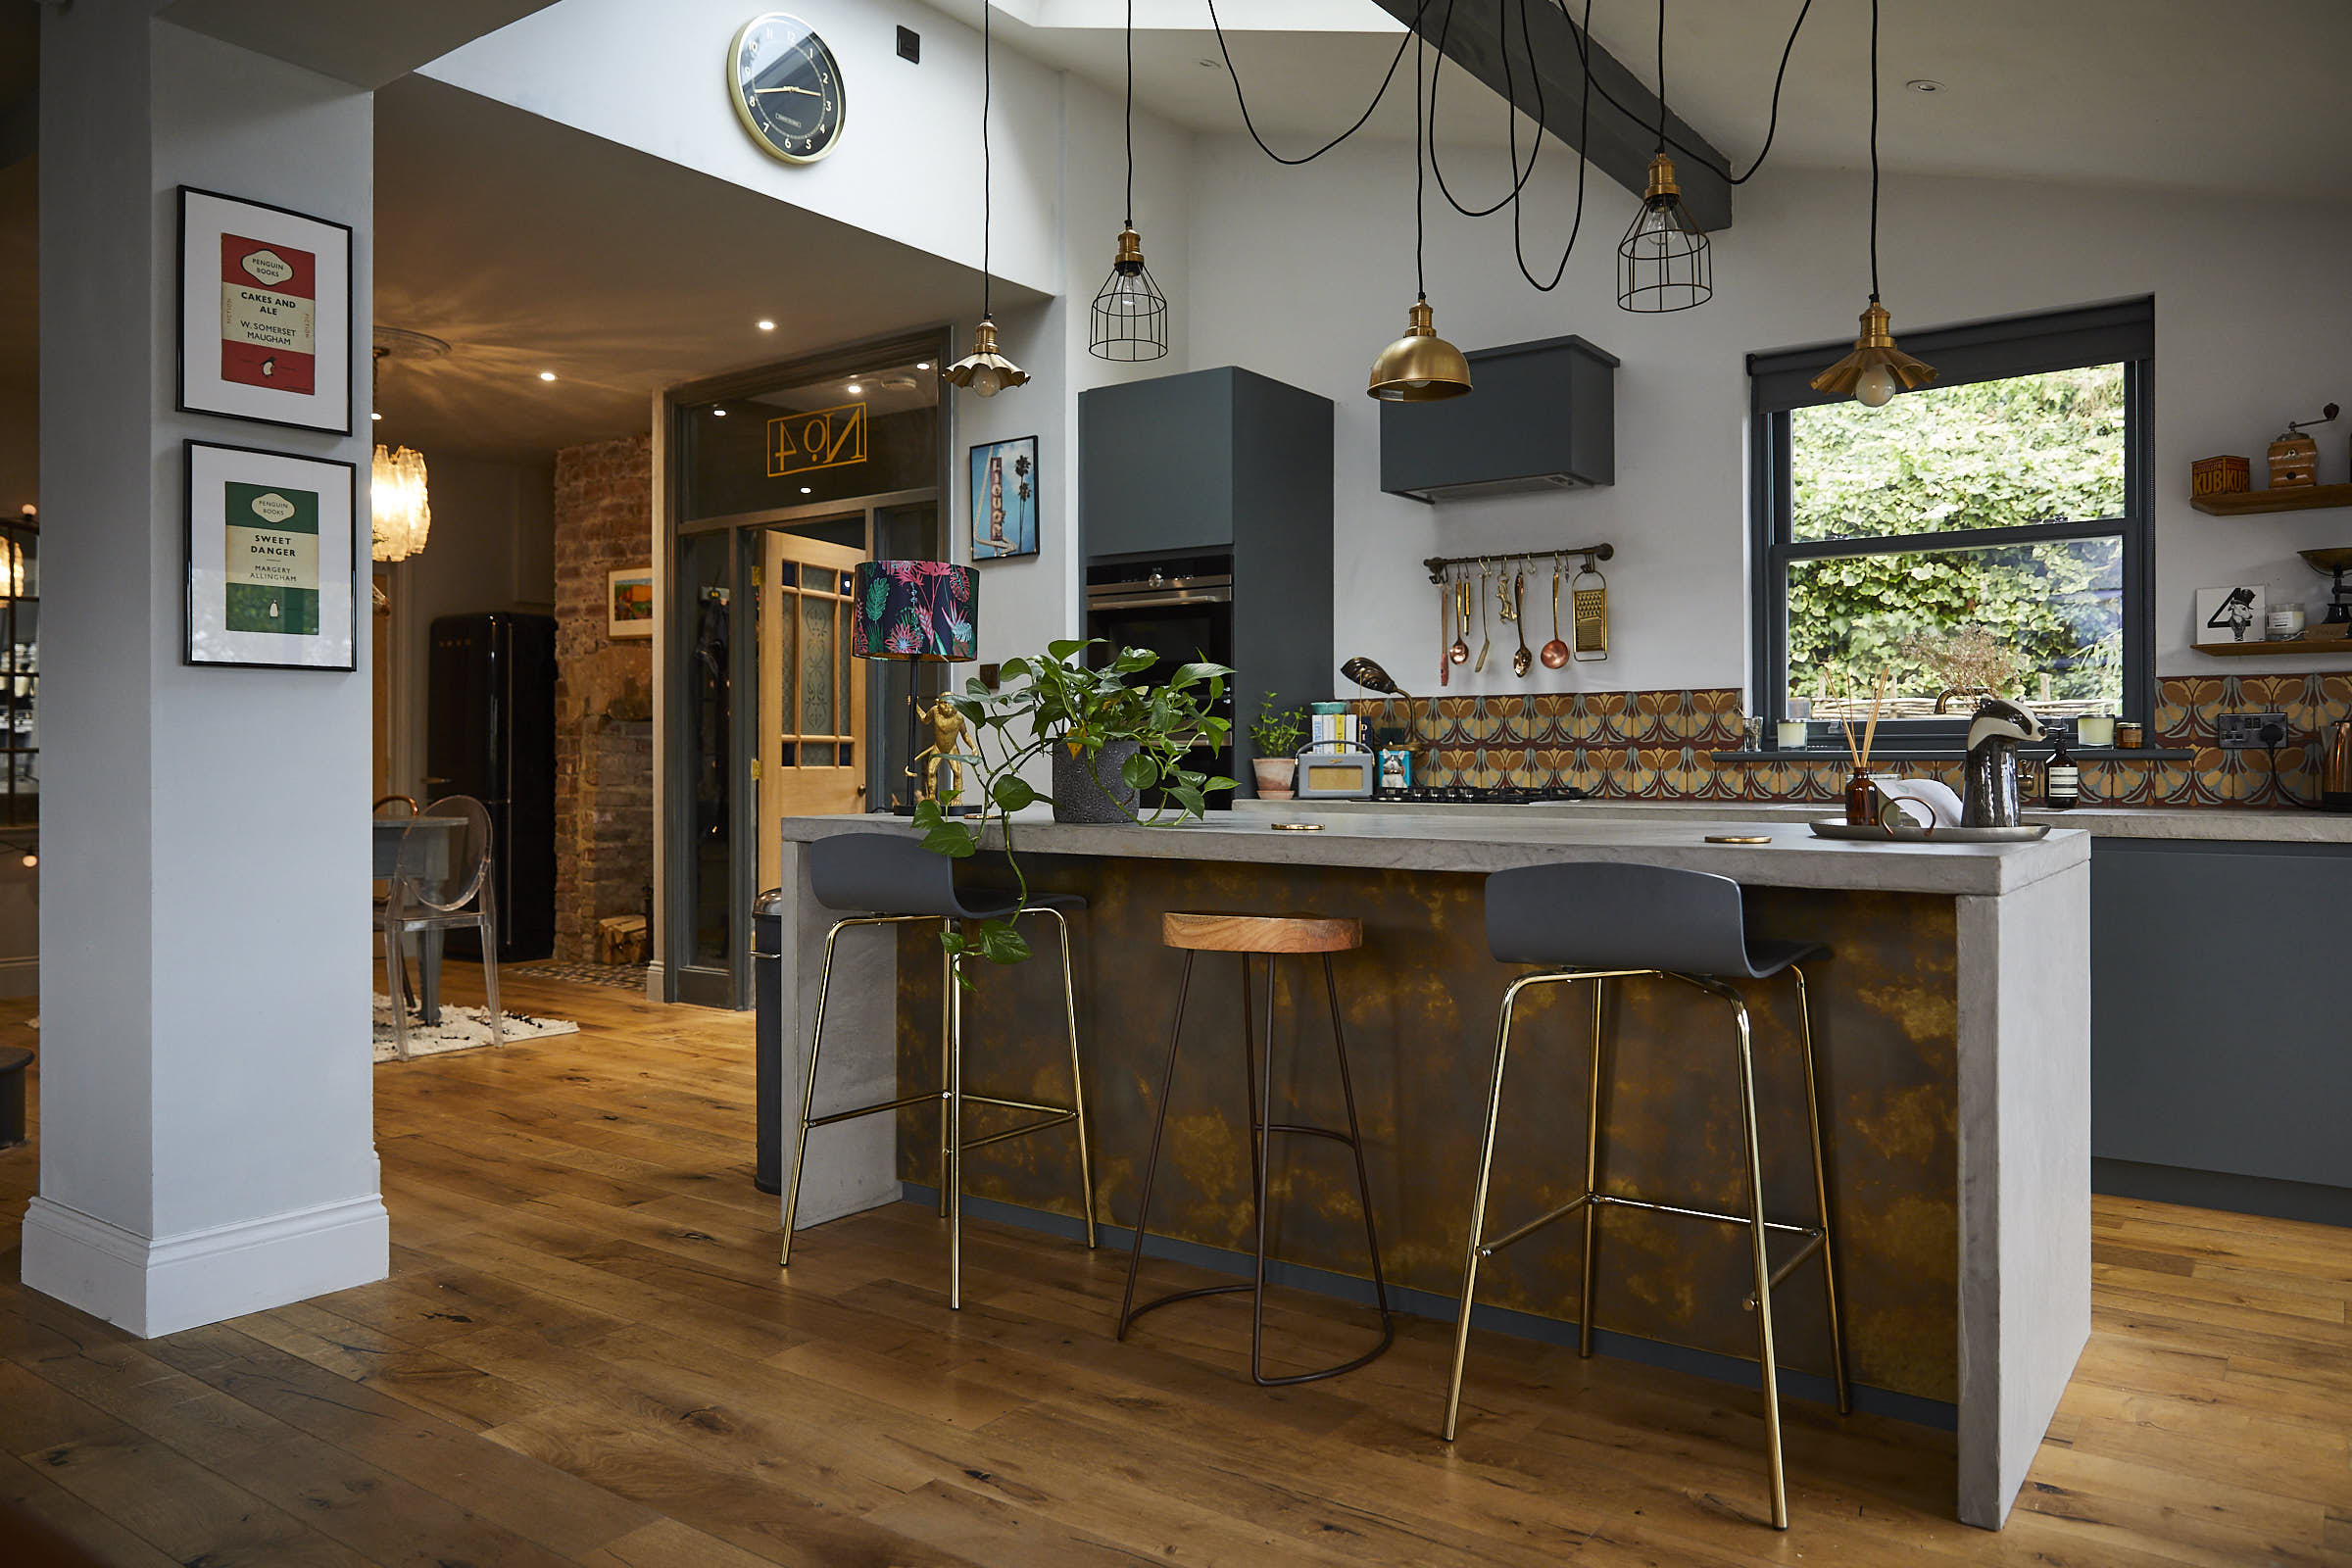 Open plan kitchen with bespoke island